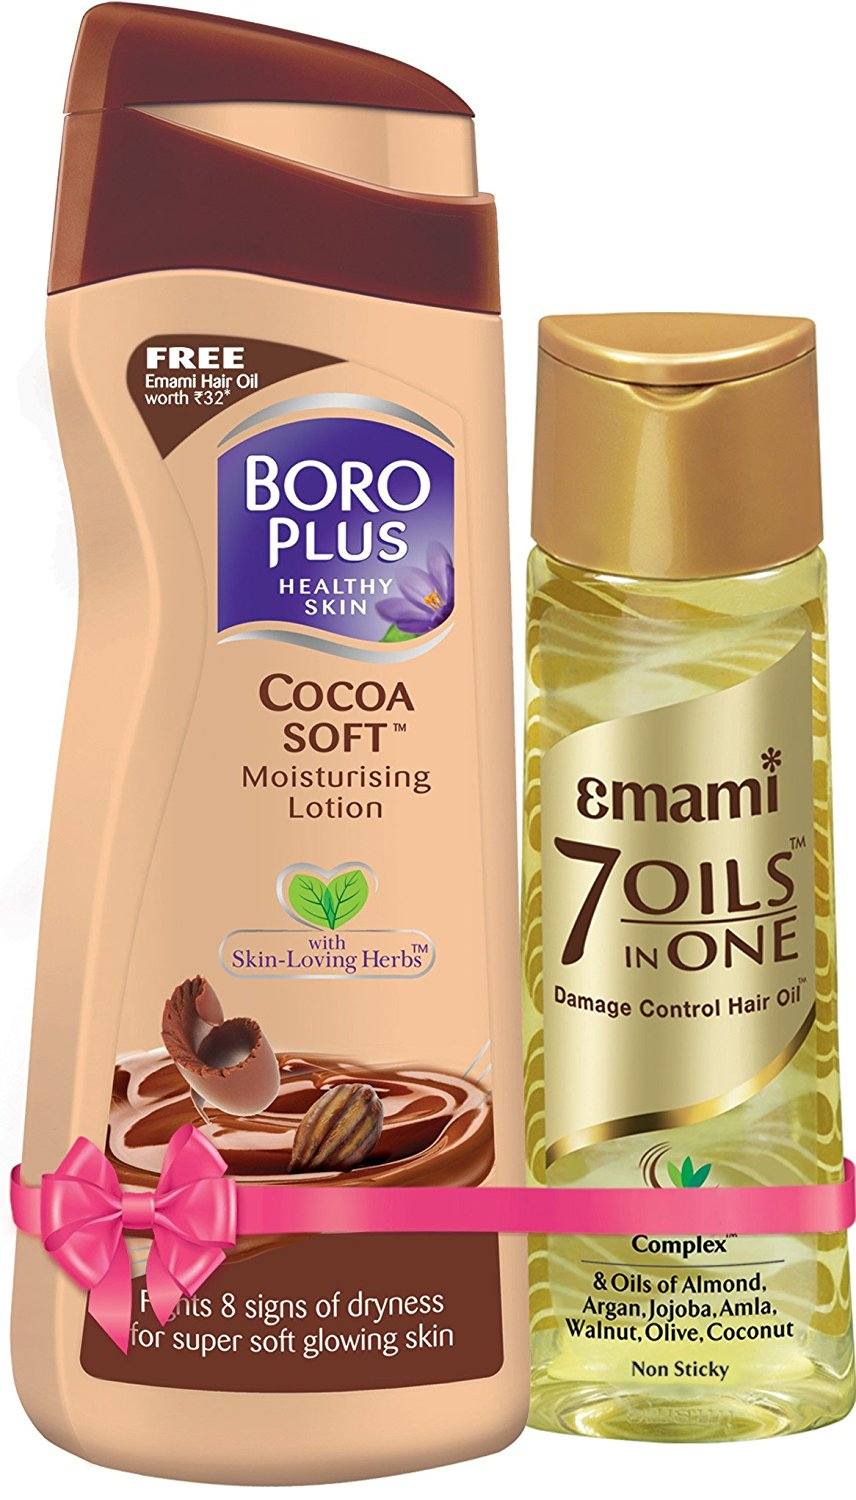 Boroplus Cocoa Soft Moisturizing Lotion, 100ml + Free Emami Hair Oil Worth Rs 32